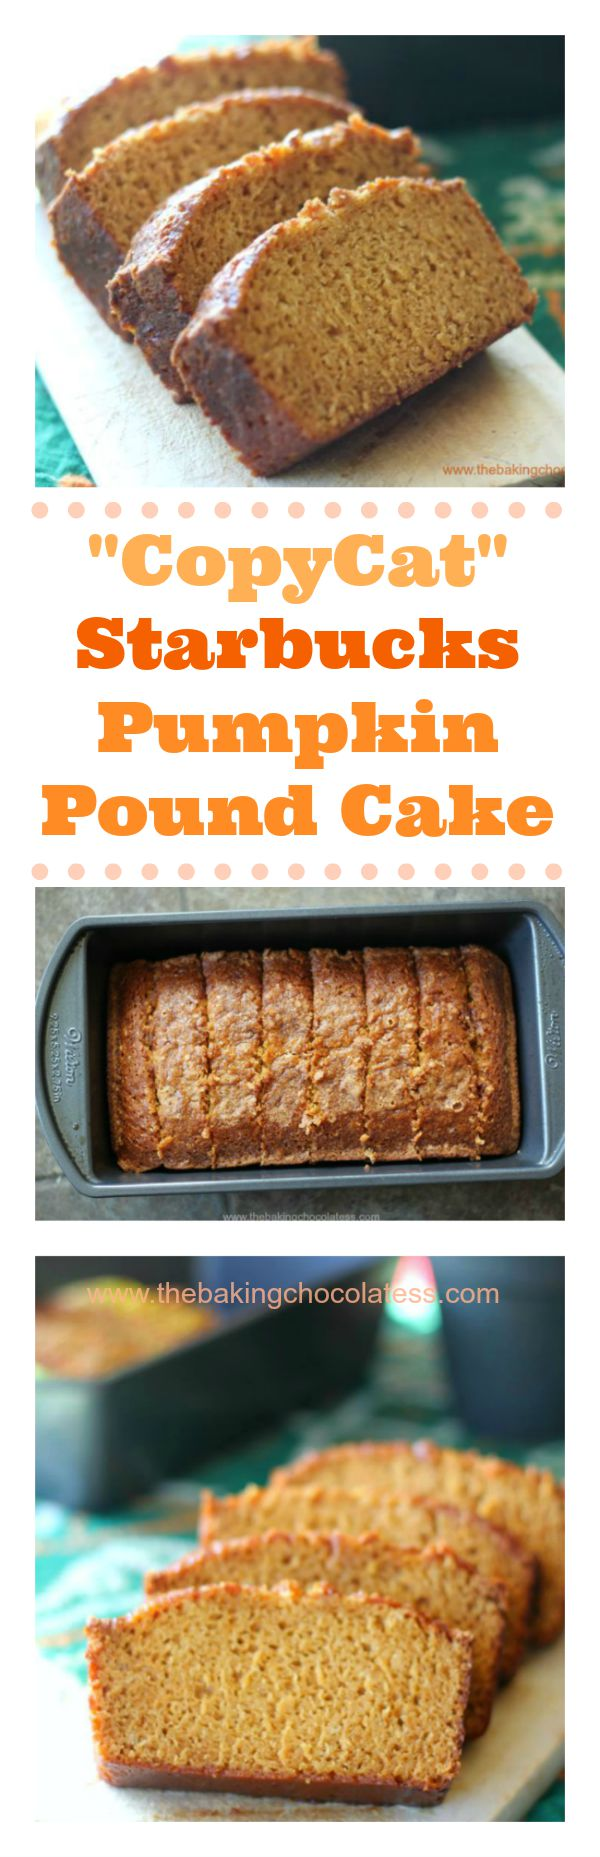 Starbucks Pumpkin Pound Cake Recipe